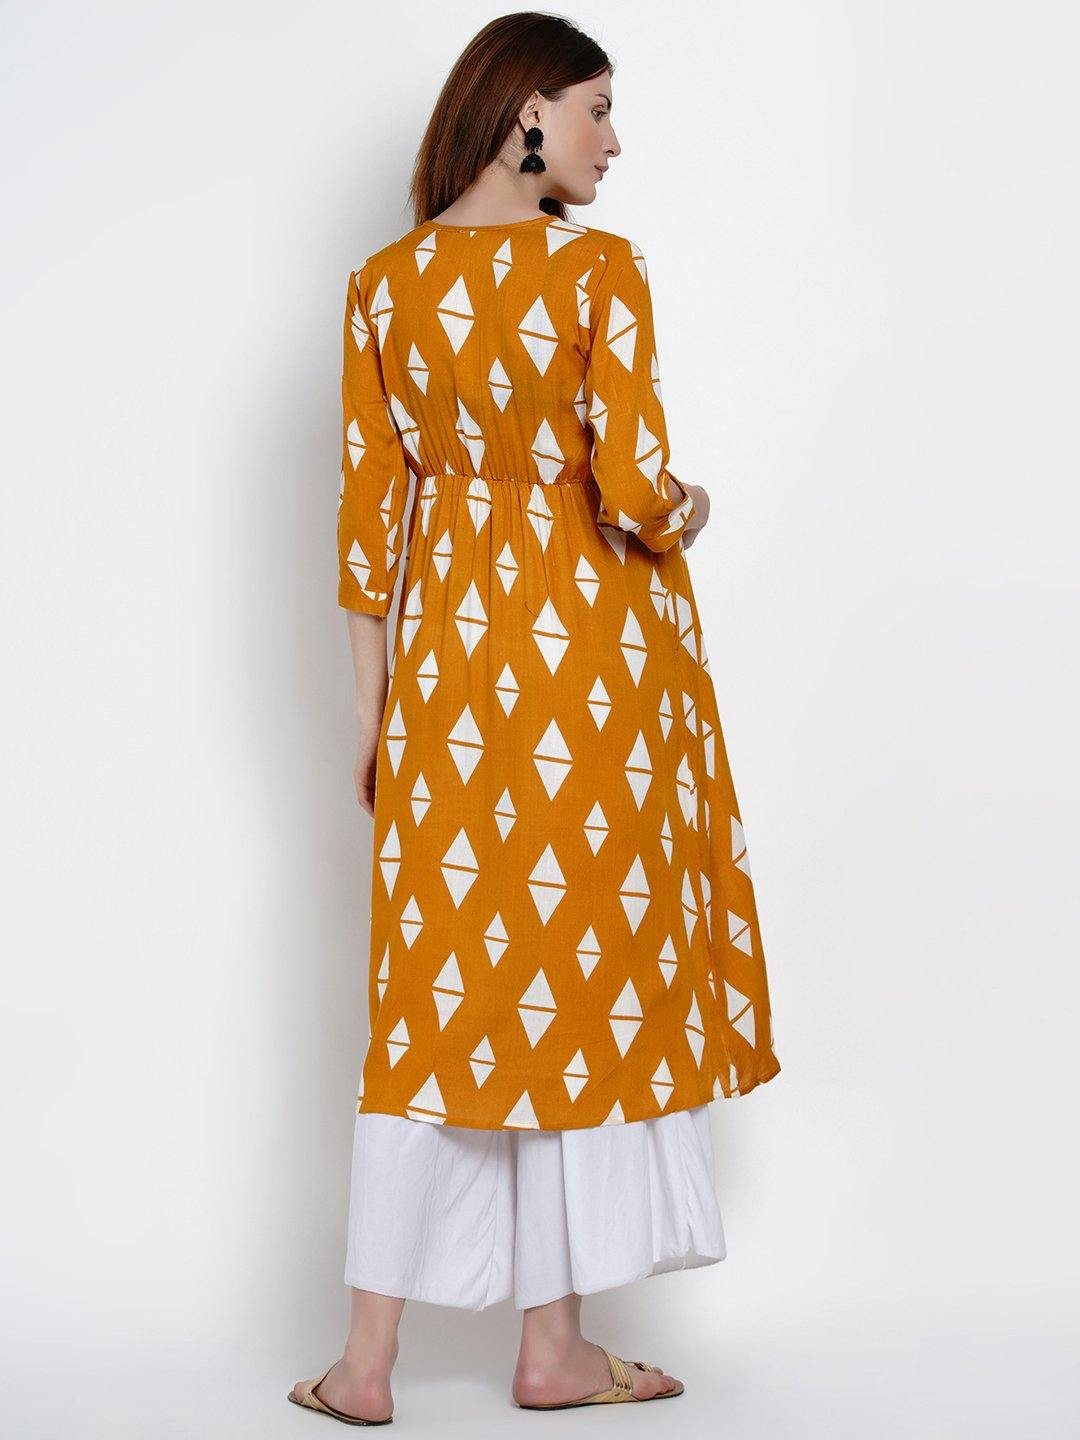 Mine4Nine - Kurta - Mine4Nine Women's Yellow A-Line Rayon Maternity Kurta